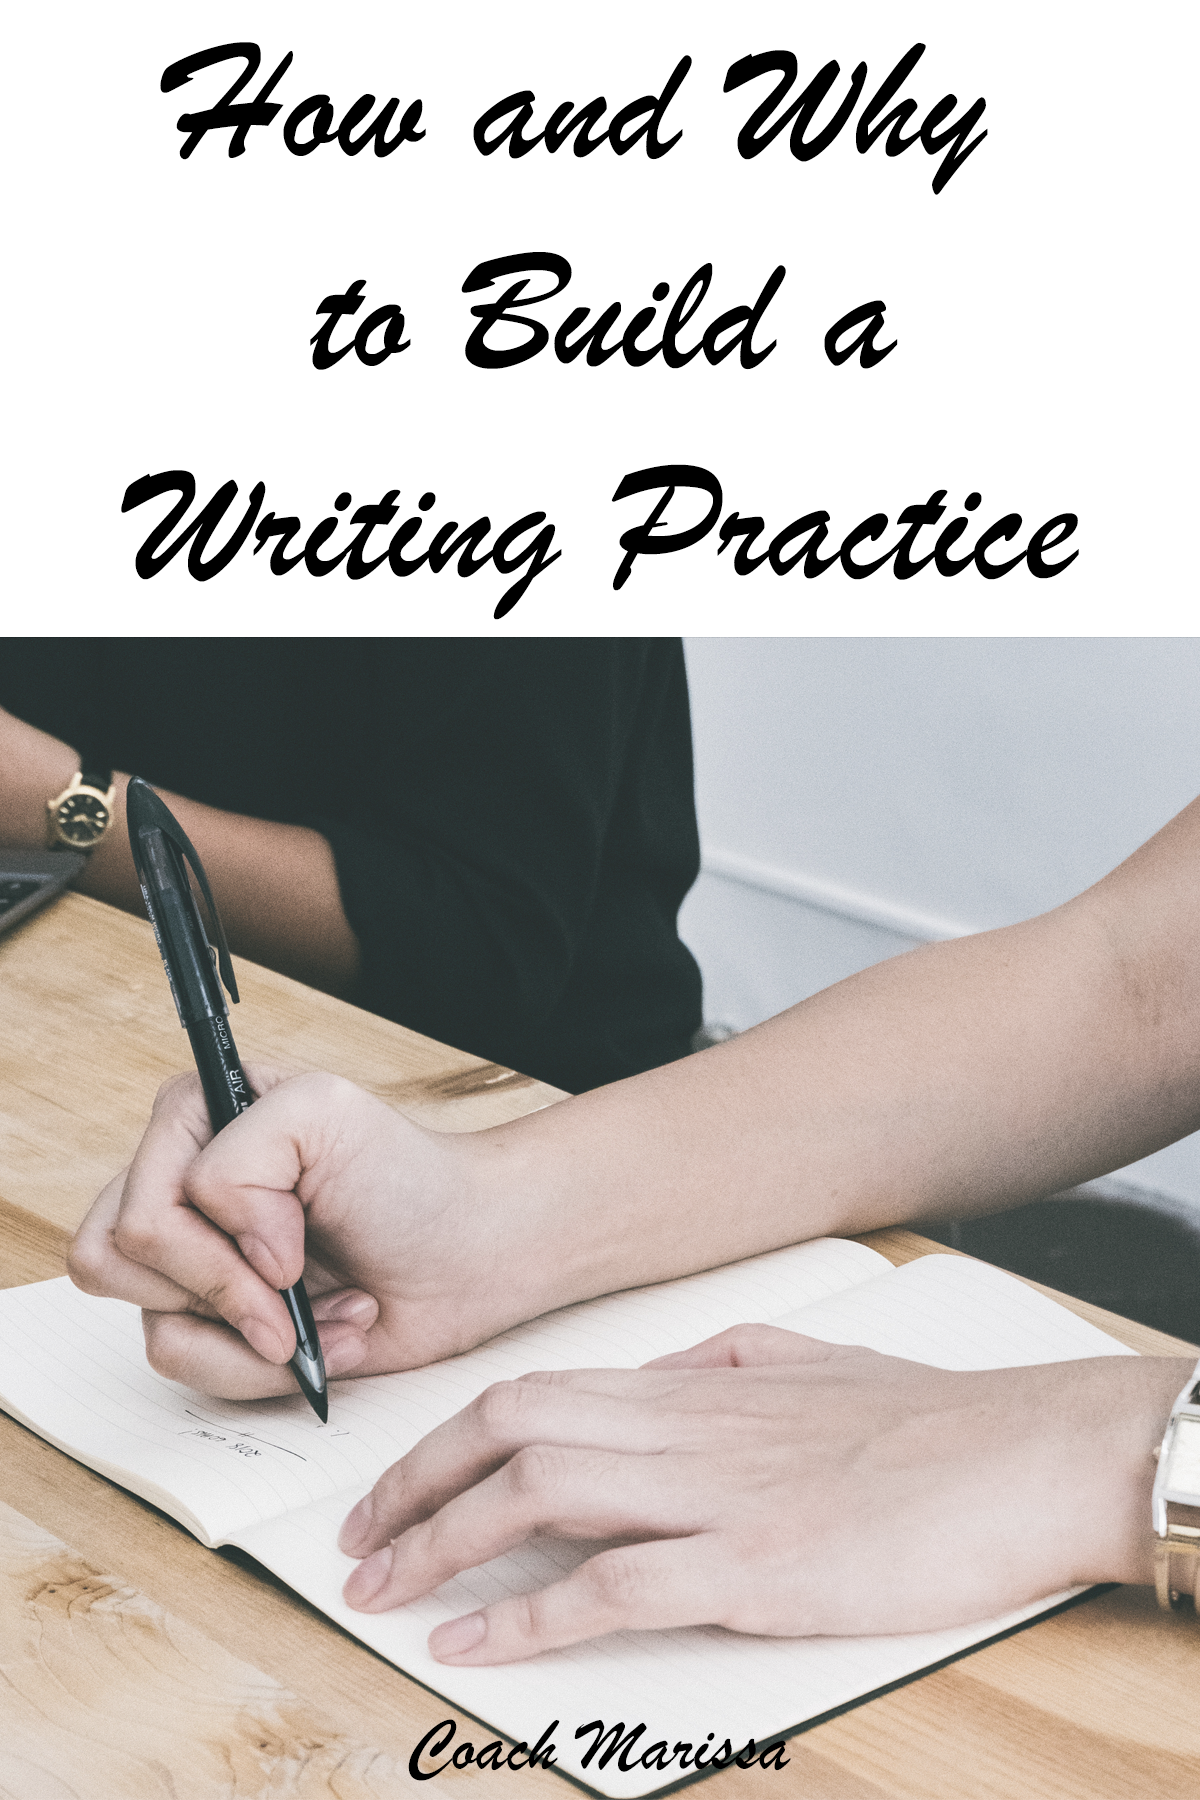 how and why to build a writing practice - get started writing today!